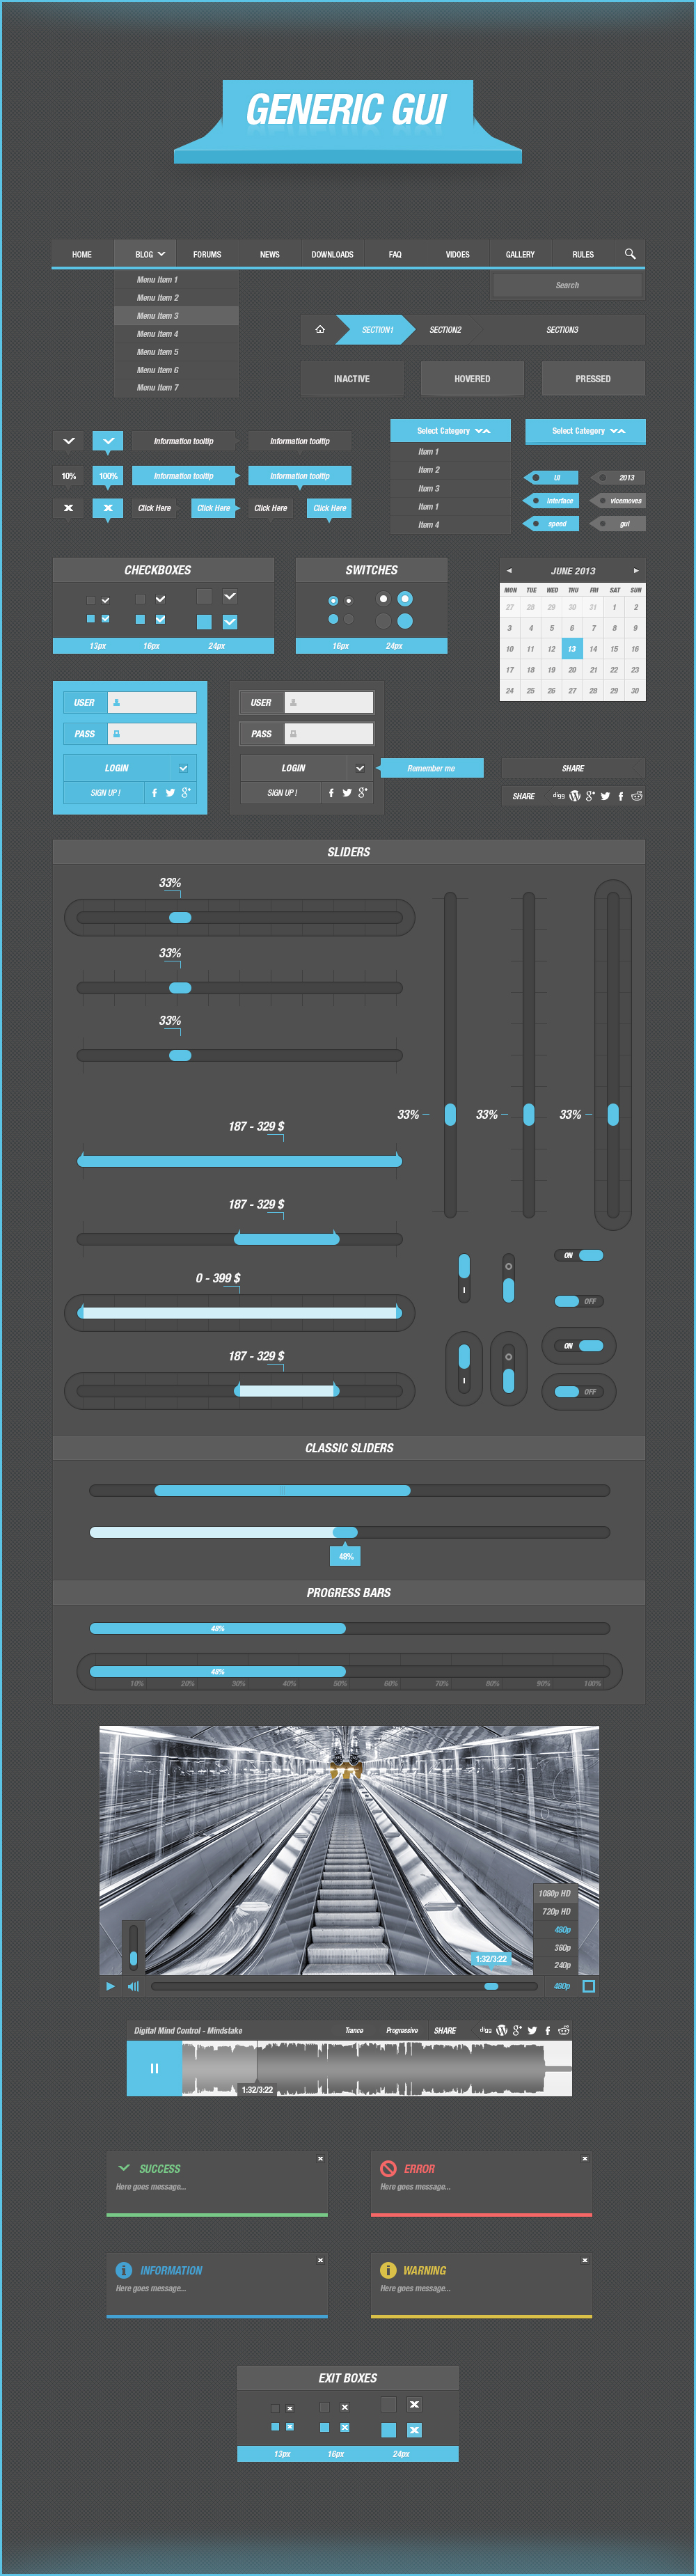 Generic GUI for Webpage / Application Design by vertus-design